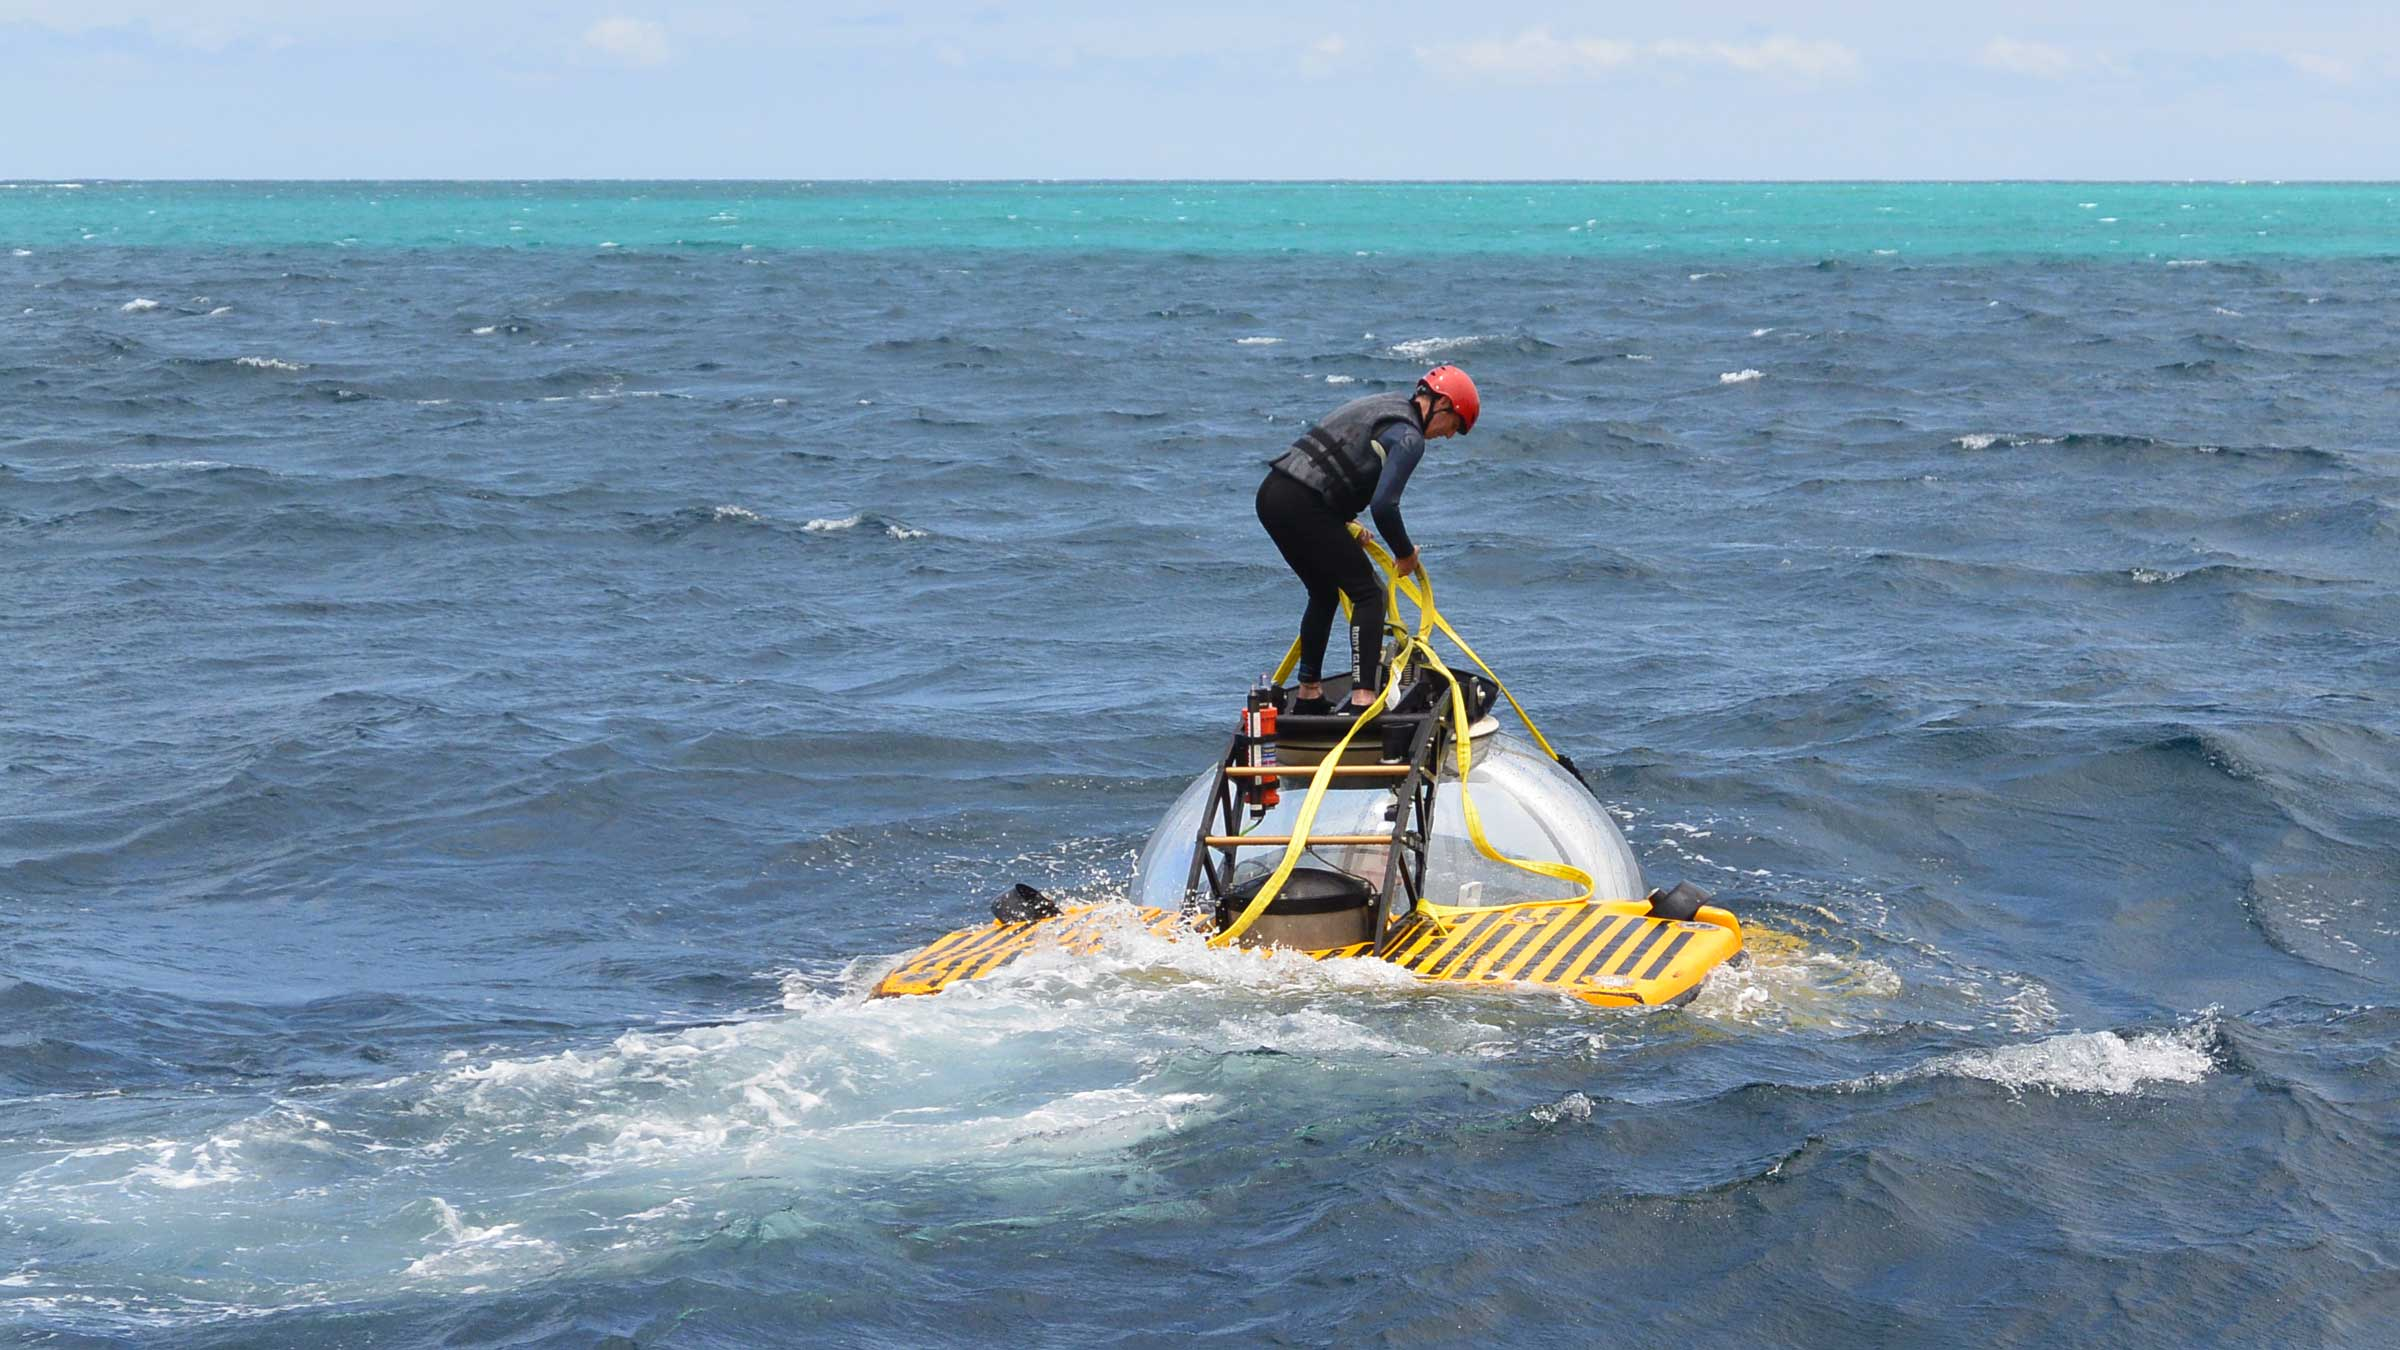 Demonstrating Triton's surface stability by standing on pontoons during surface movements in choppy waters